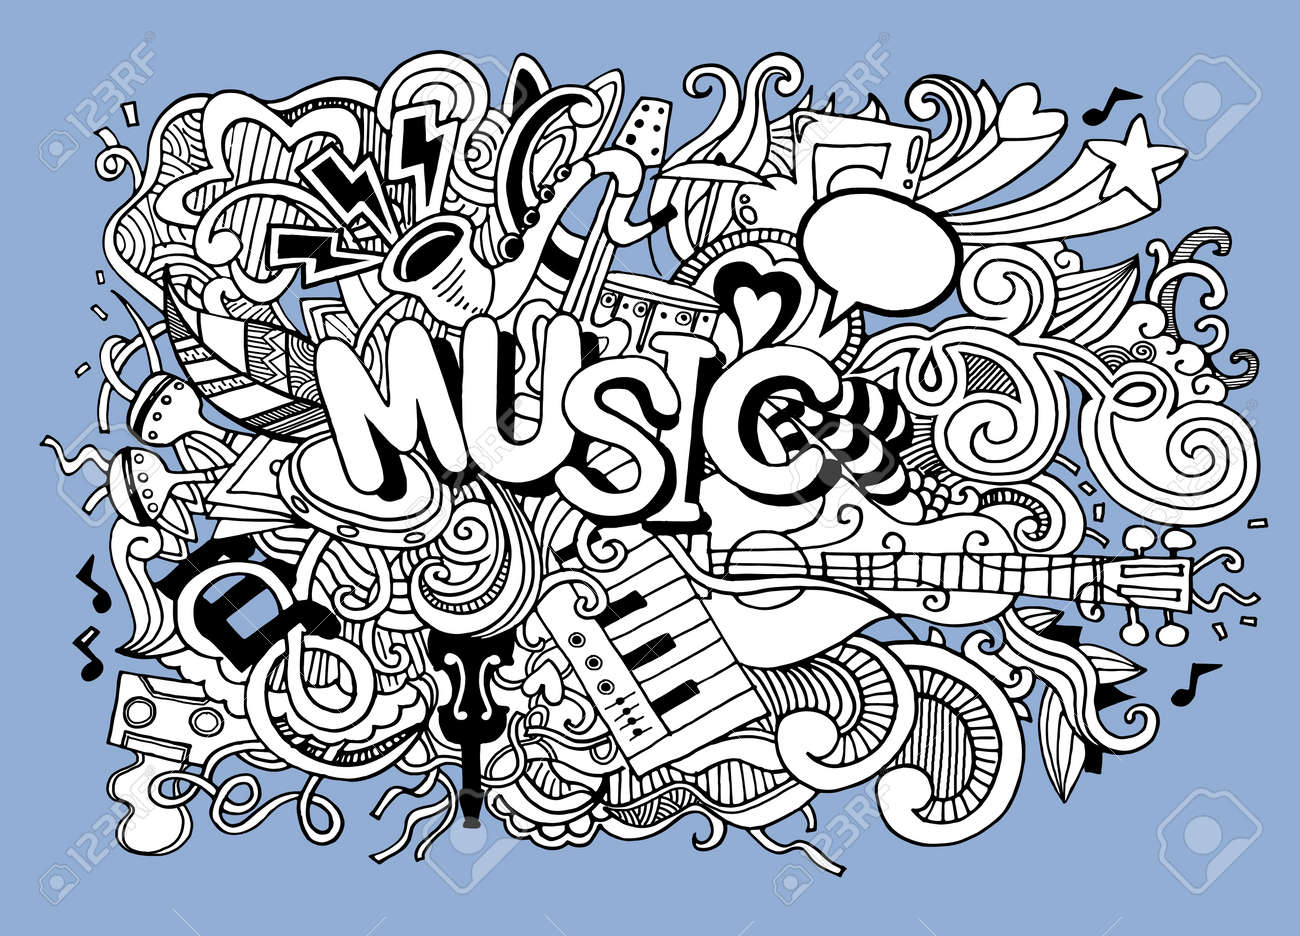 Dessin De Music abstract music background ,collage with musical instruments.hand